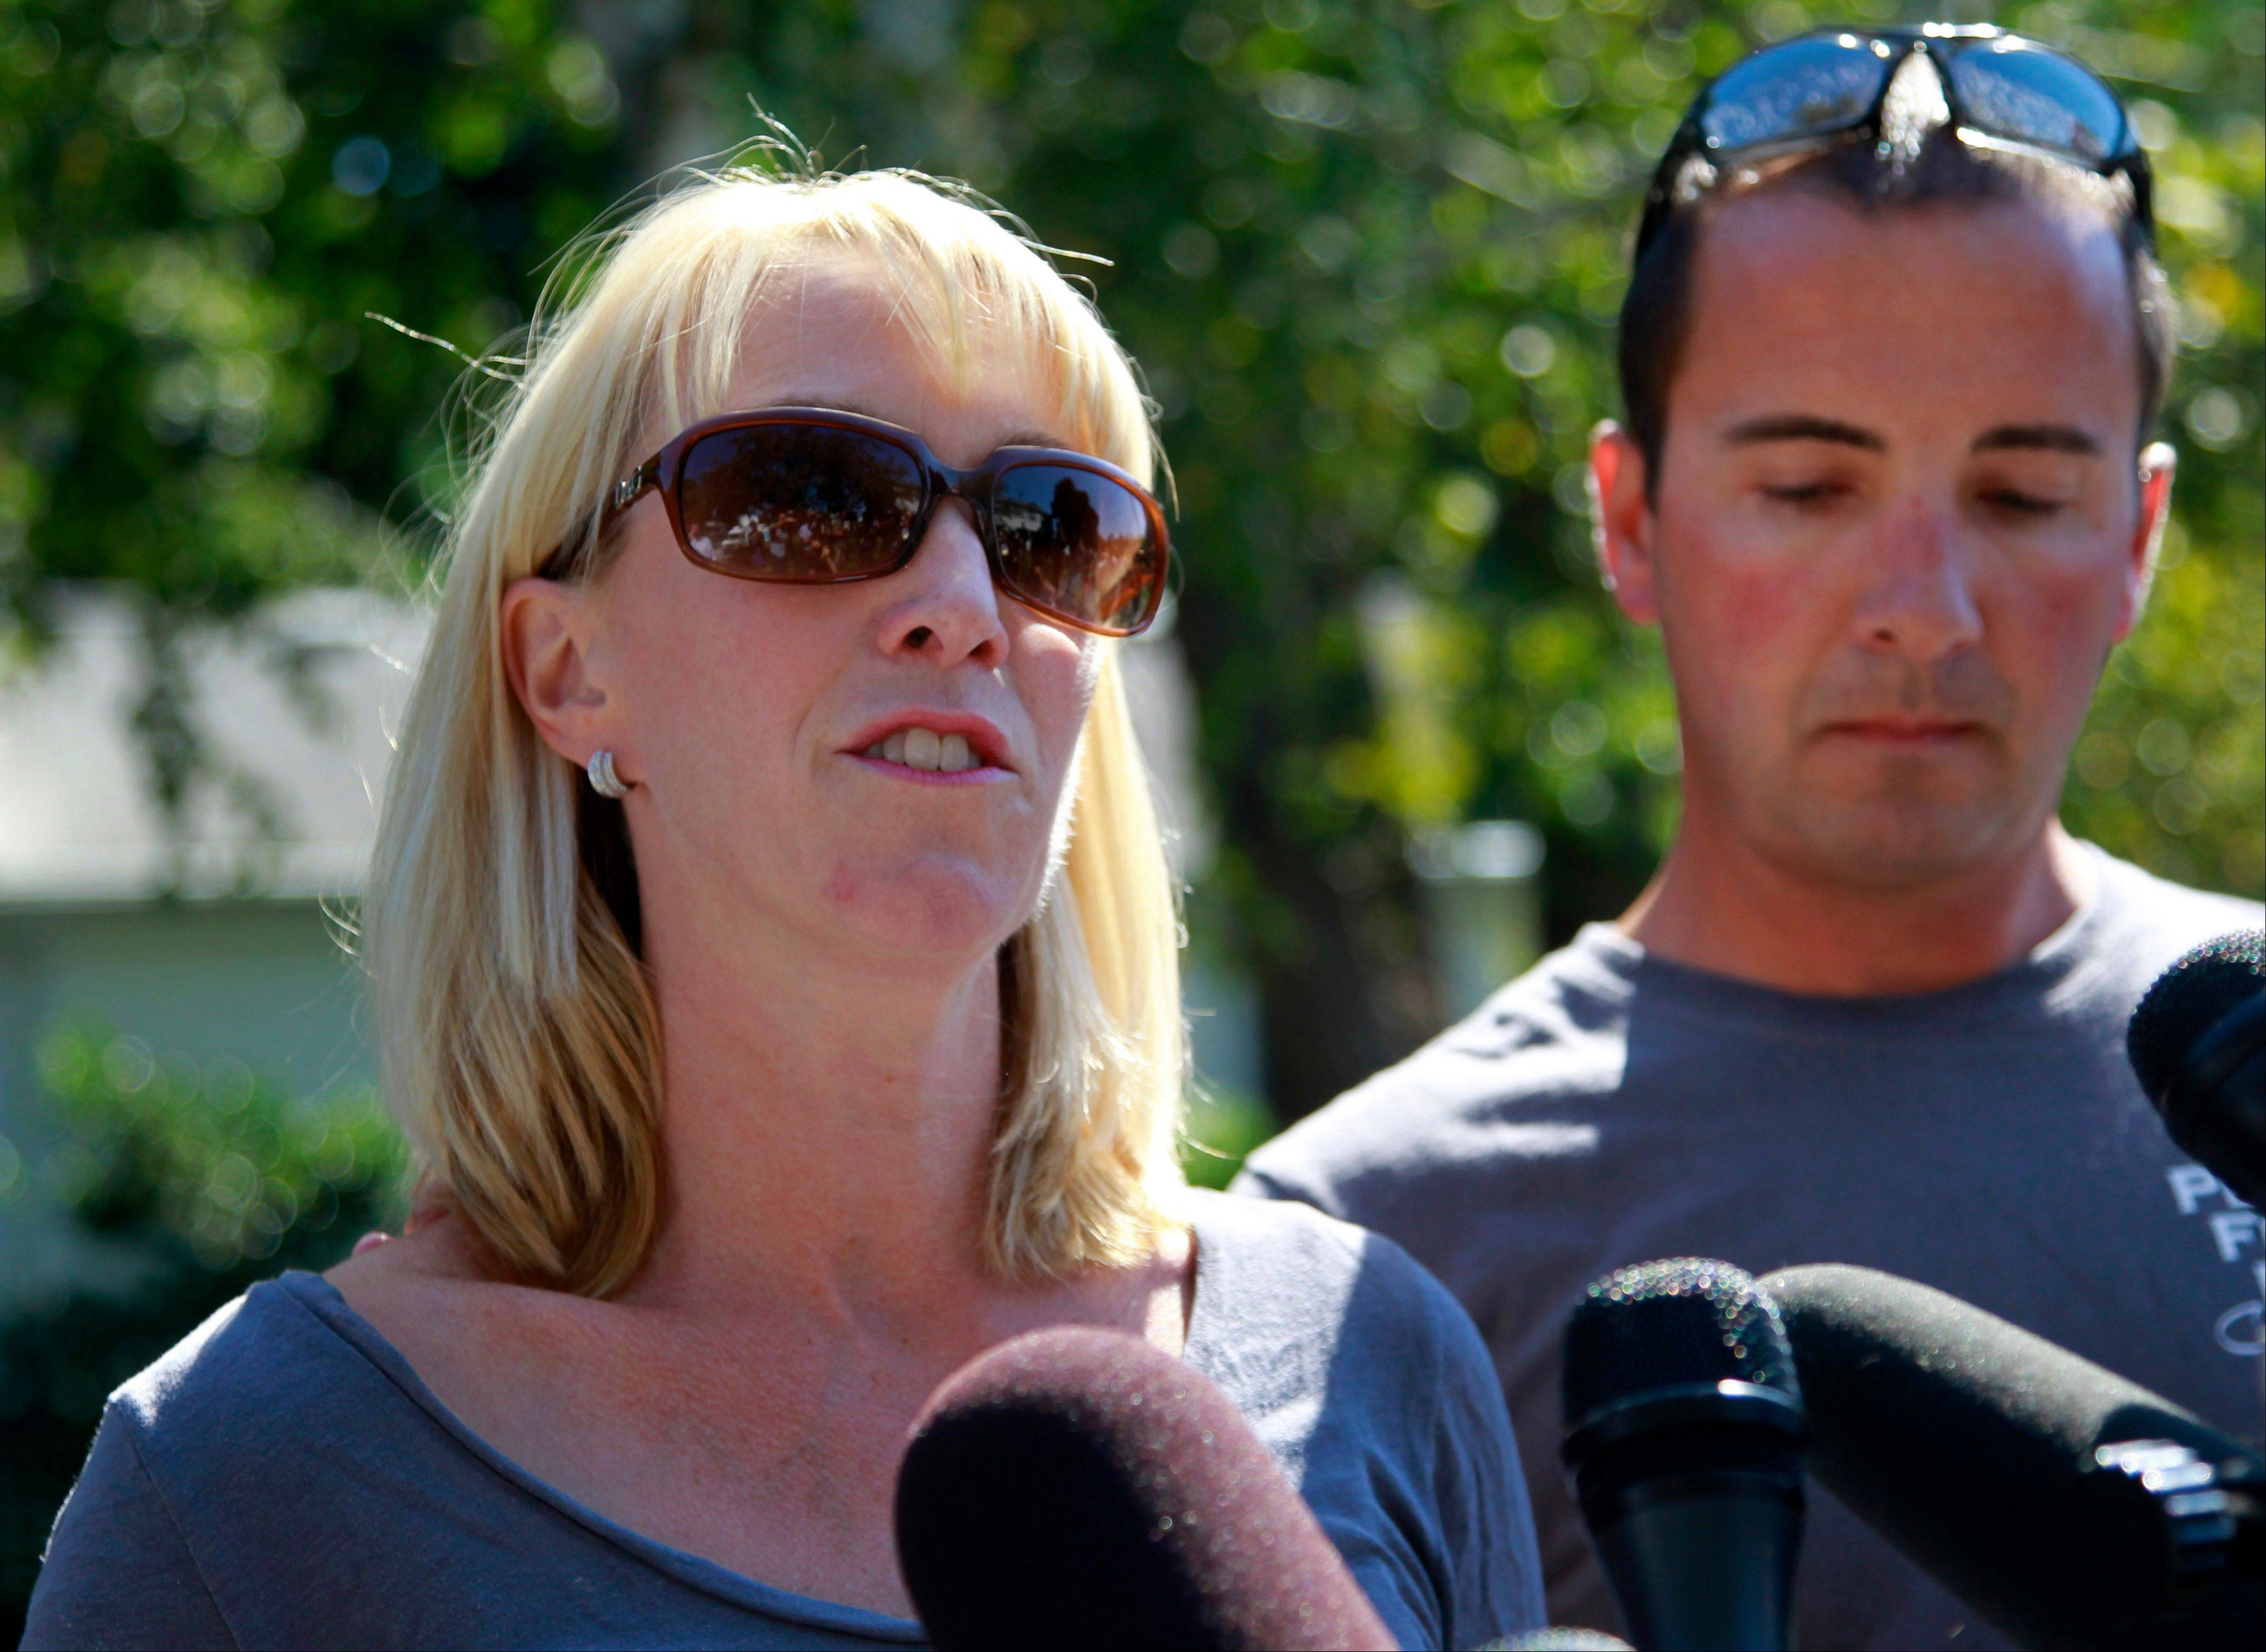 Kate Quigley, who says her brother Glen Doherty was among the Americans killed in an attack on the U.S. Consulate in Libya, faces reporters Thursday with her husband Mark Quigley, right.